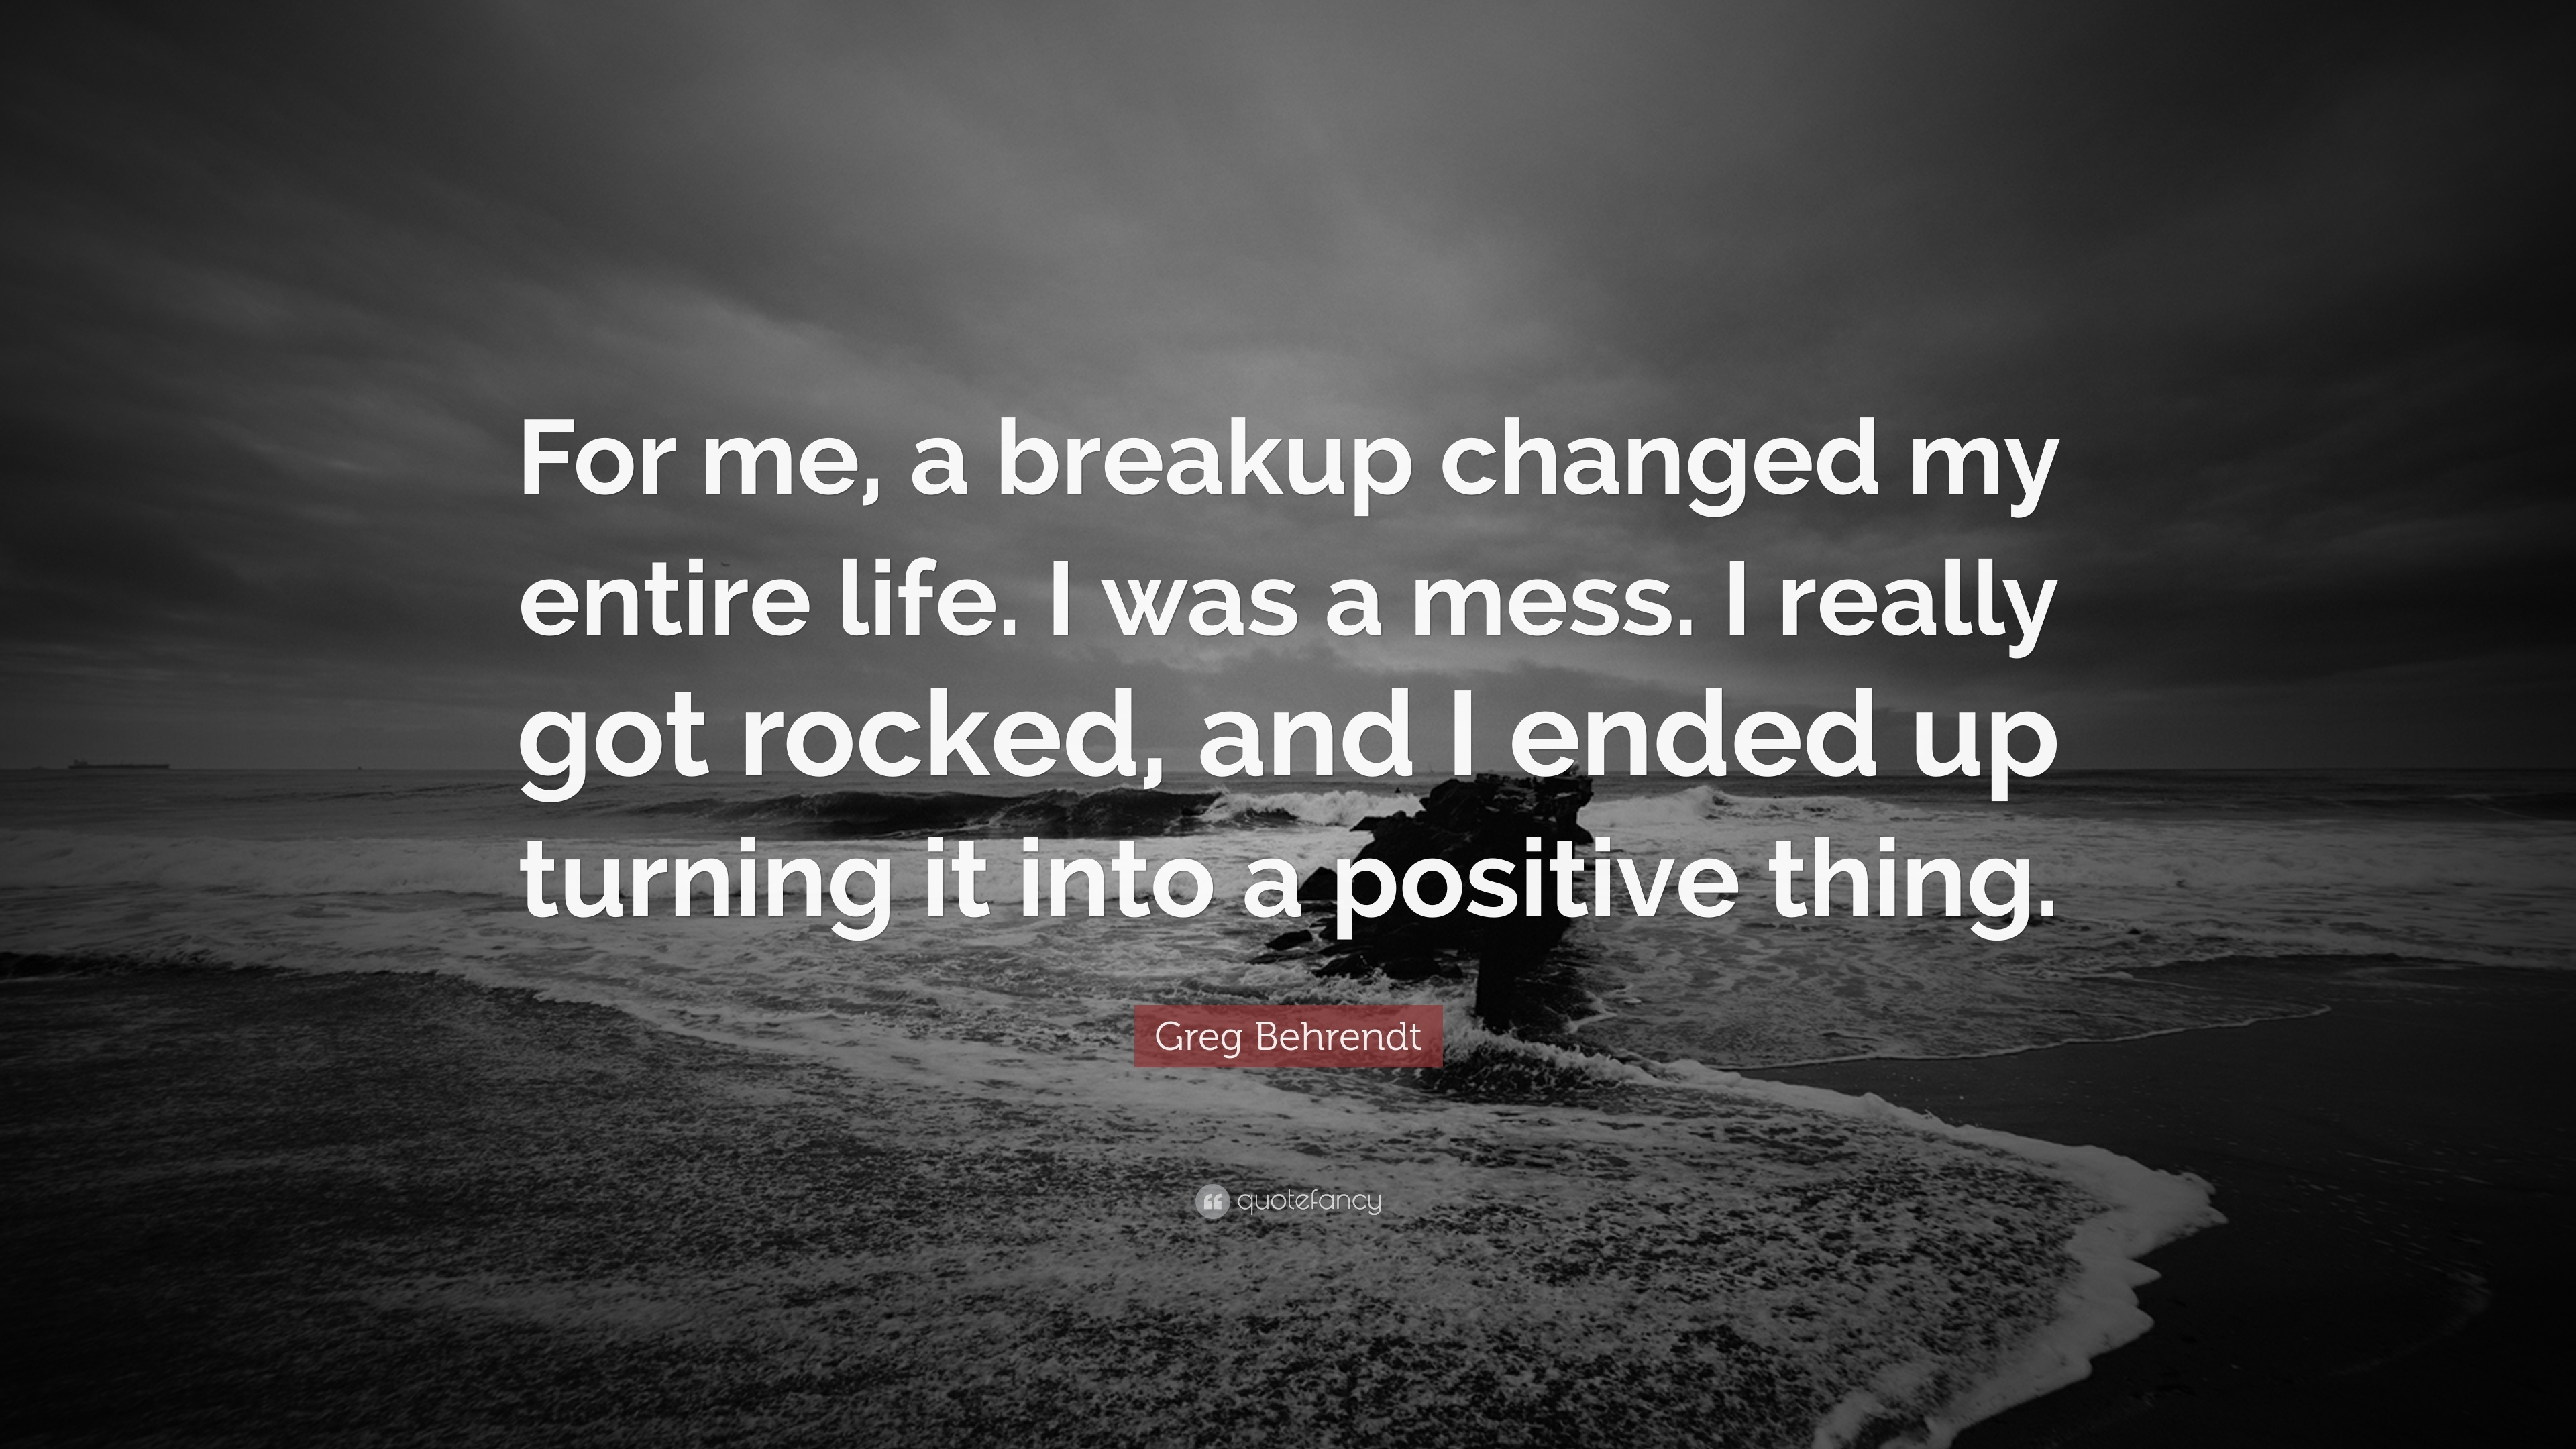 Breakup Quotes 40 Wallpapers Quotefancy